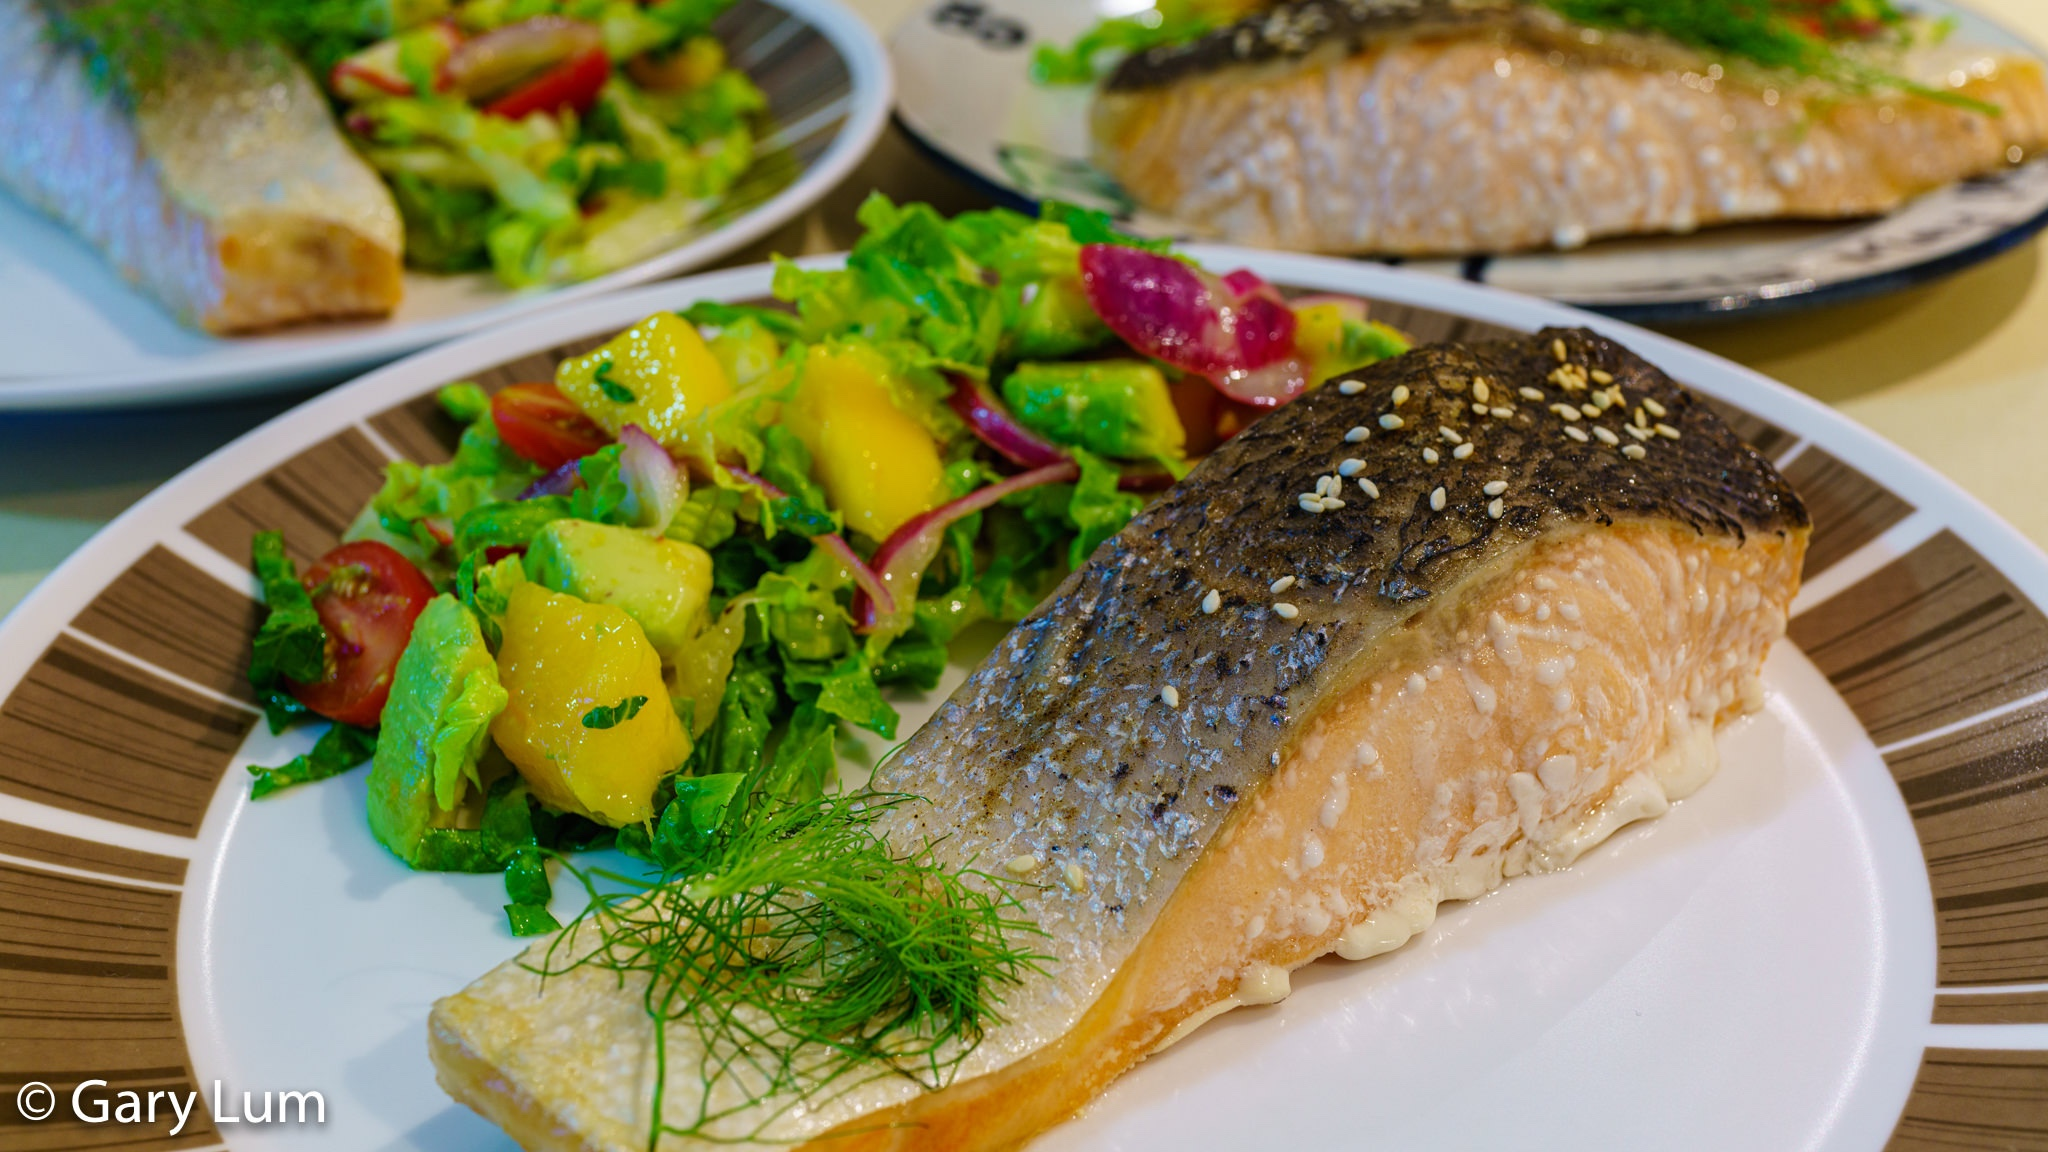 Baked salmon with pickled red onions, fennel, and radish in a mango and avocado salad. Gary Lum.